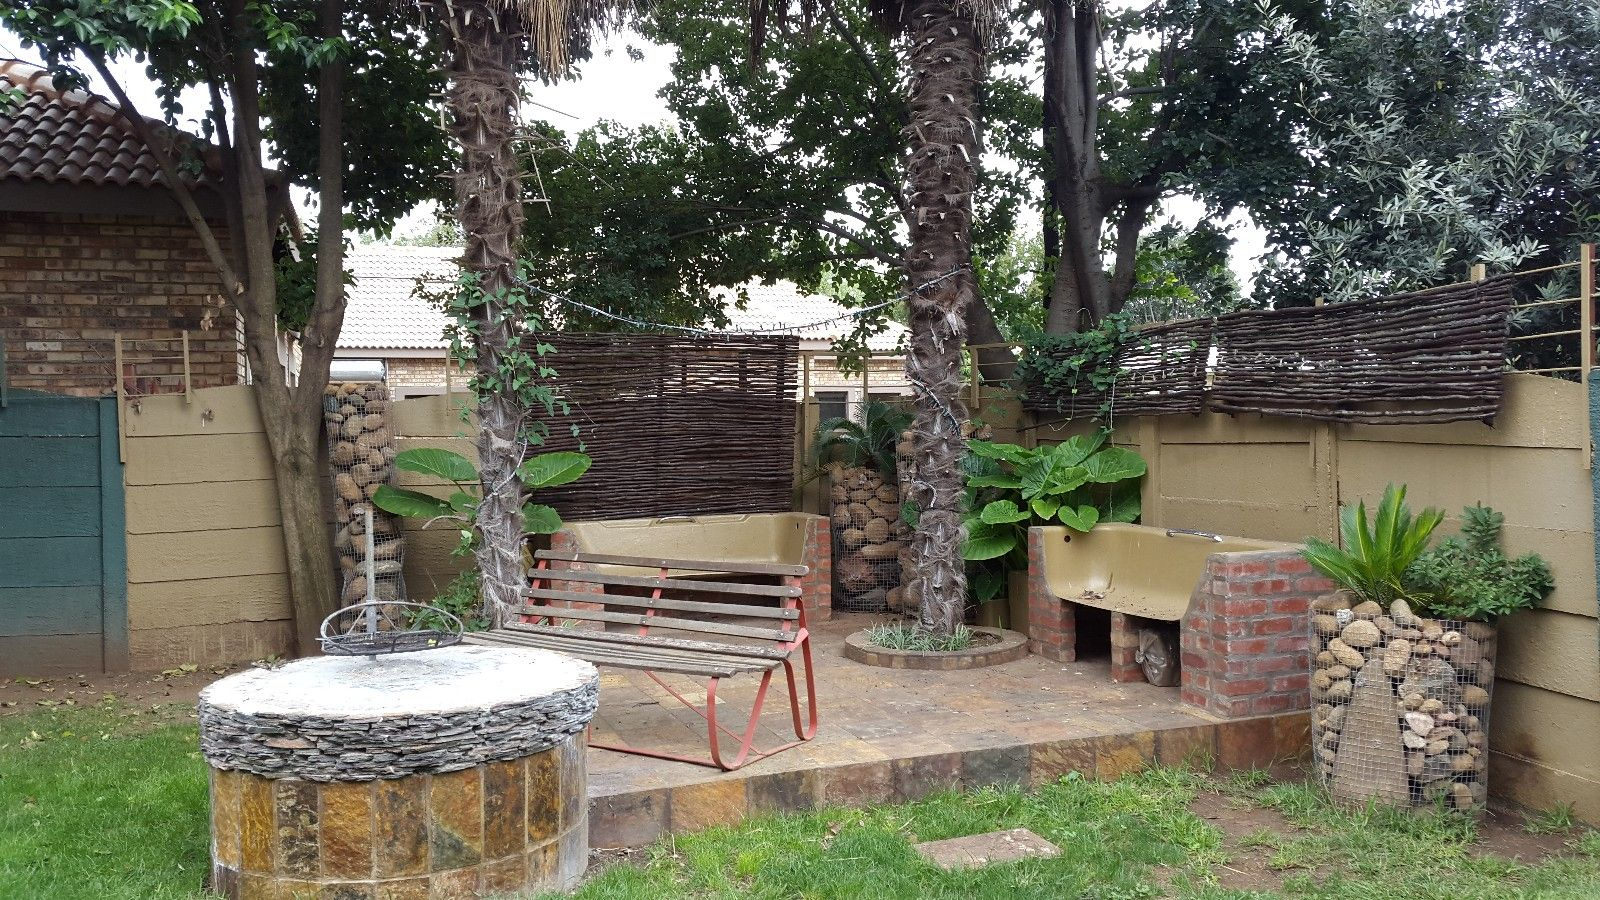 Potchefstroom Central property for sale. Ref No: 13451884. Picture no 4